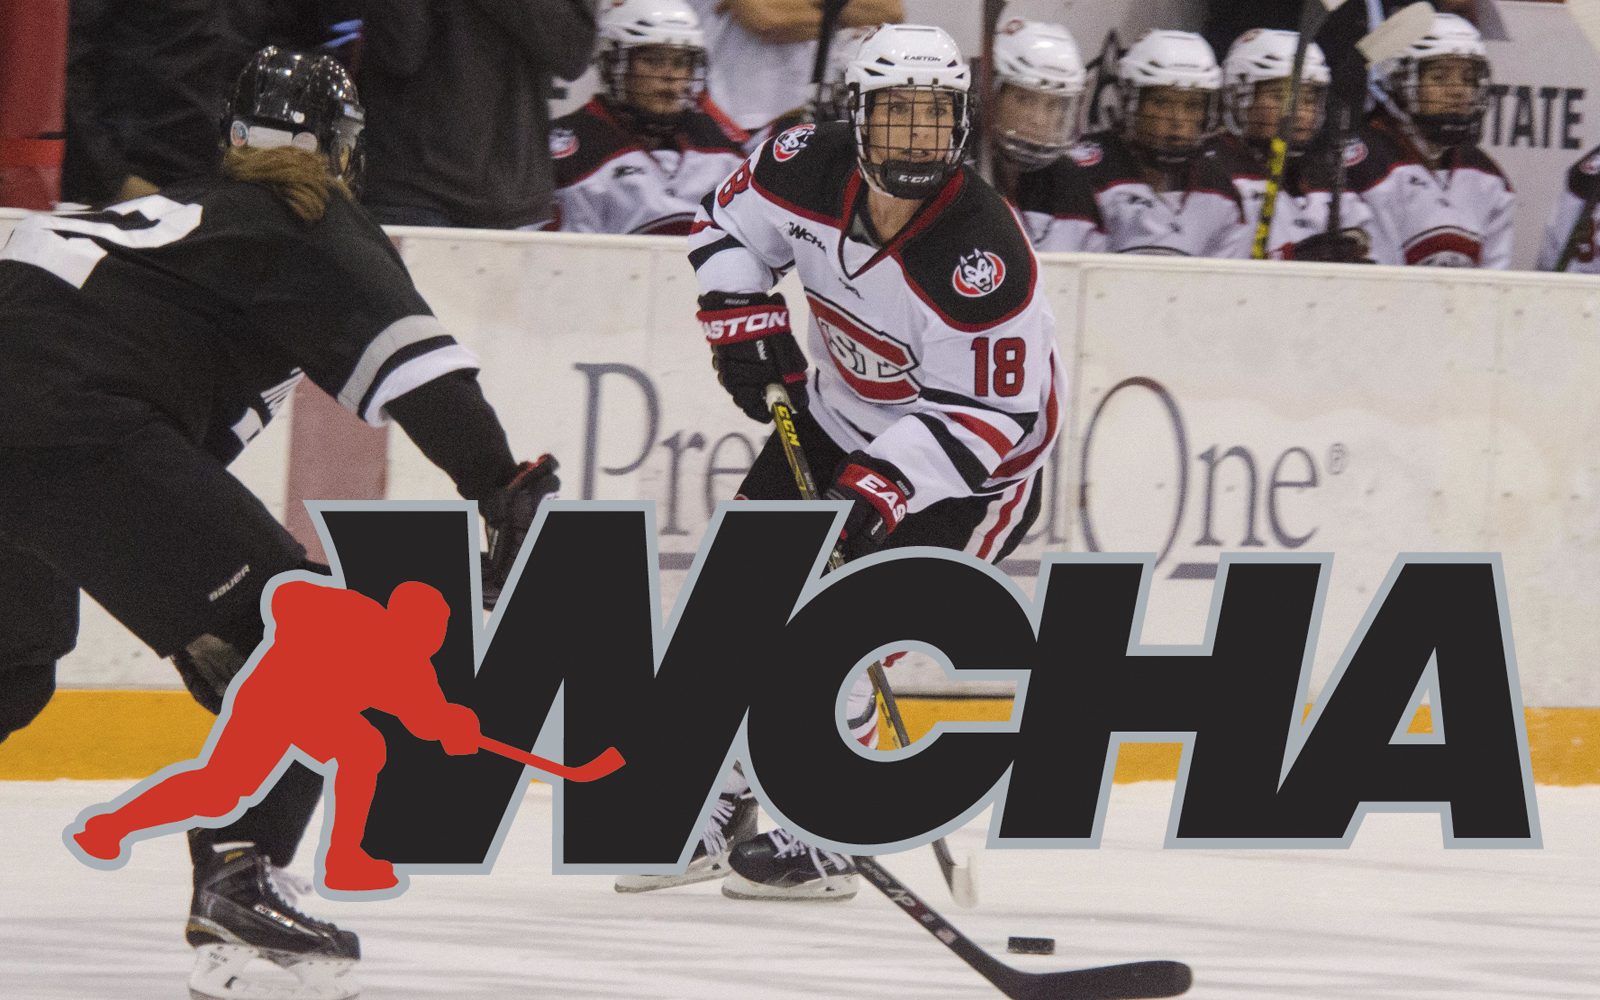 2016 WCHA Final Face-Off ticket packages now on sale - St. Cloud ... 6f739e594586b